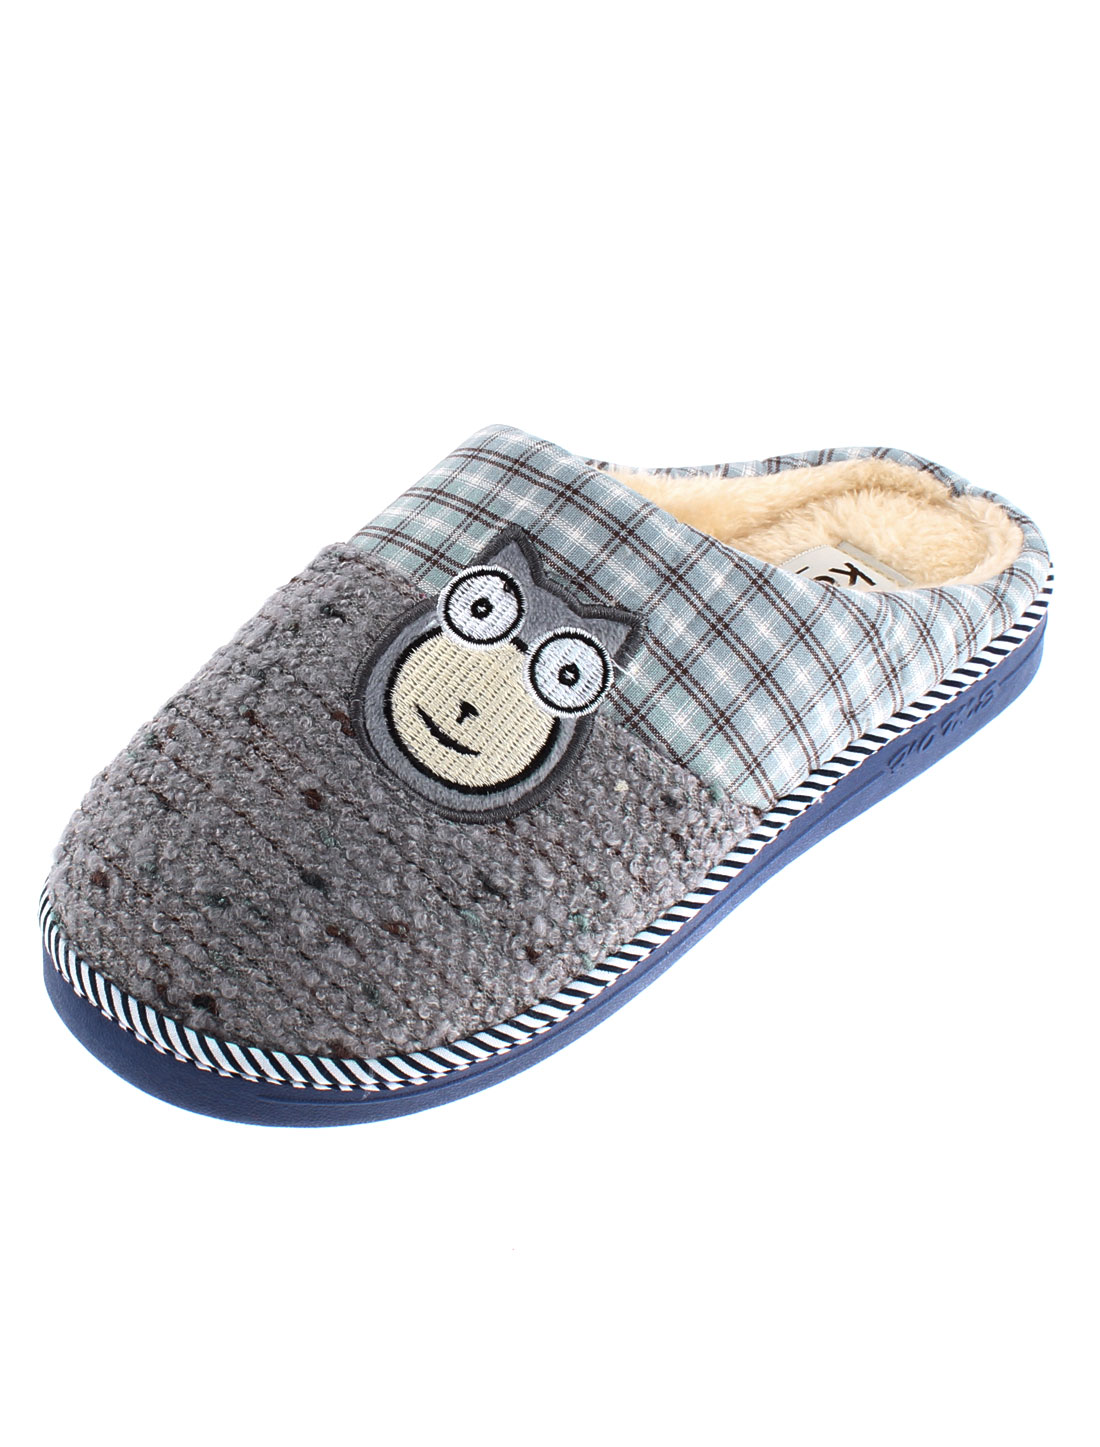 Home Cat Embroidery Anti Slip Casual Warmer Slippers for Women Gray US 8.5